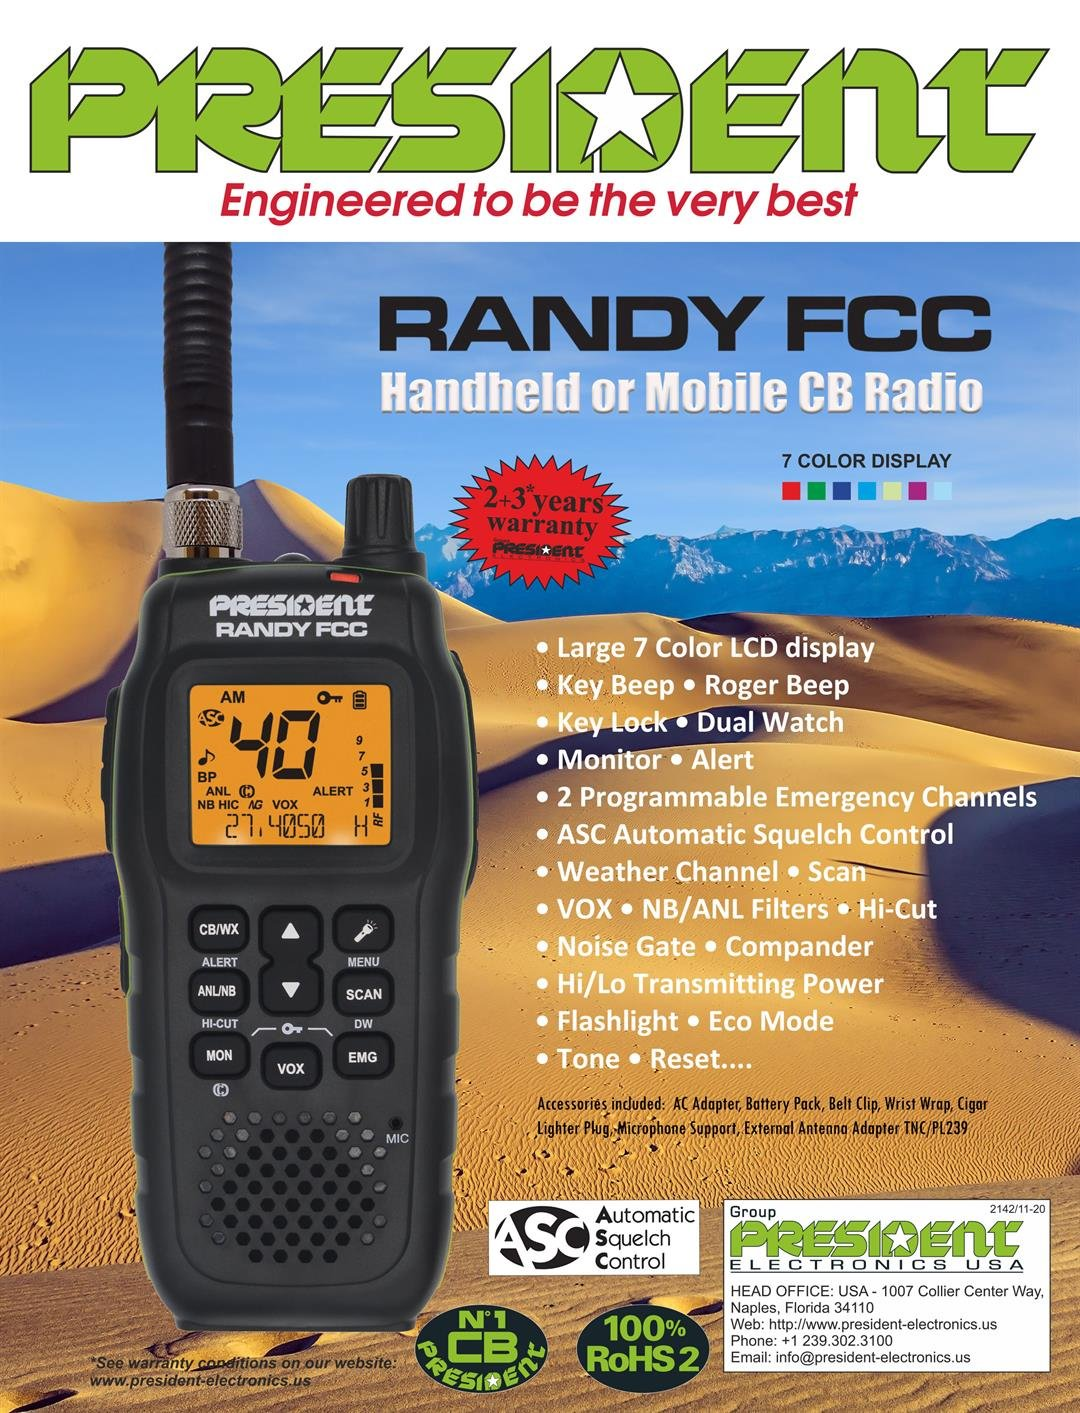 President Randy FCC Handheld or Mobile CB Radio with Weather Channel and Alerts